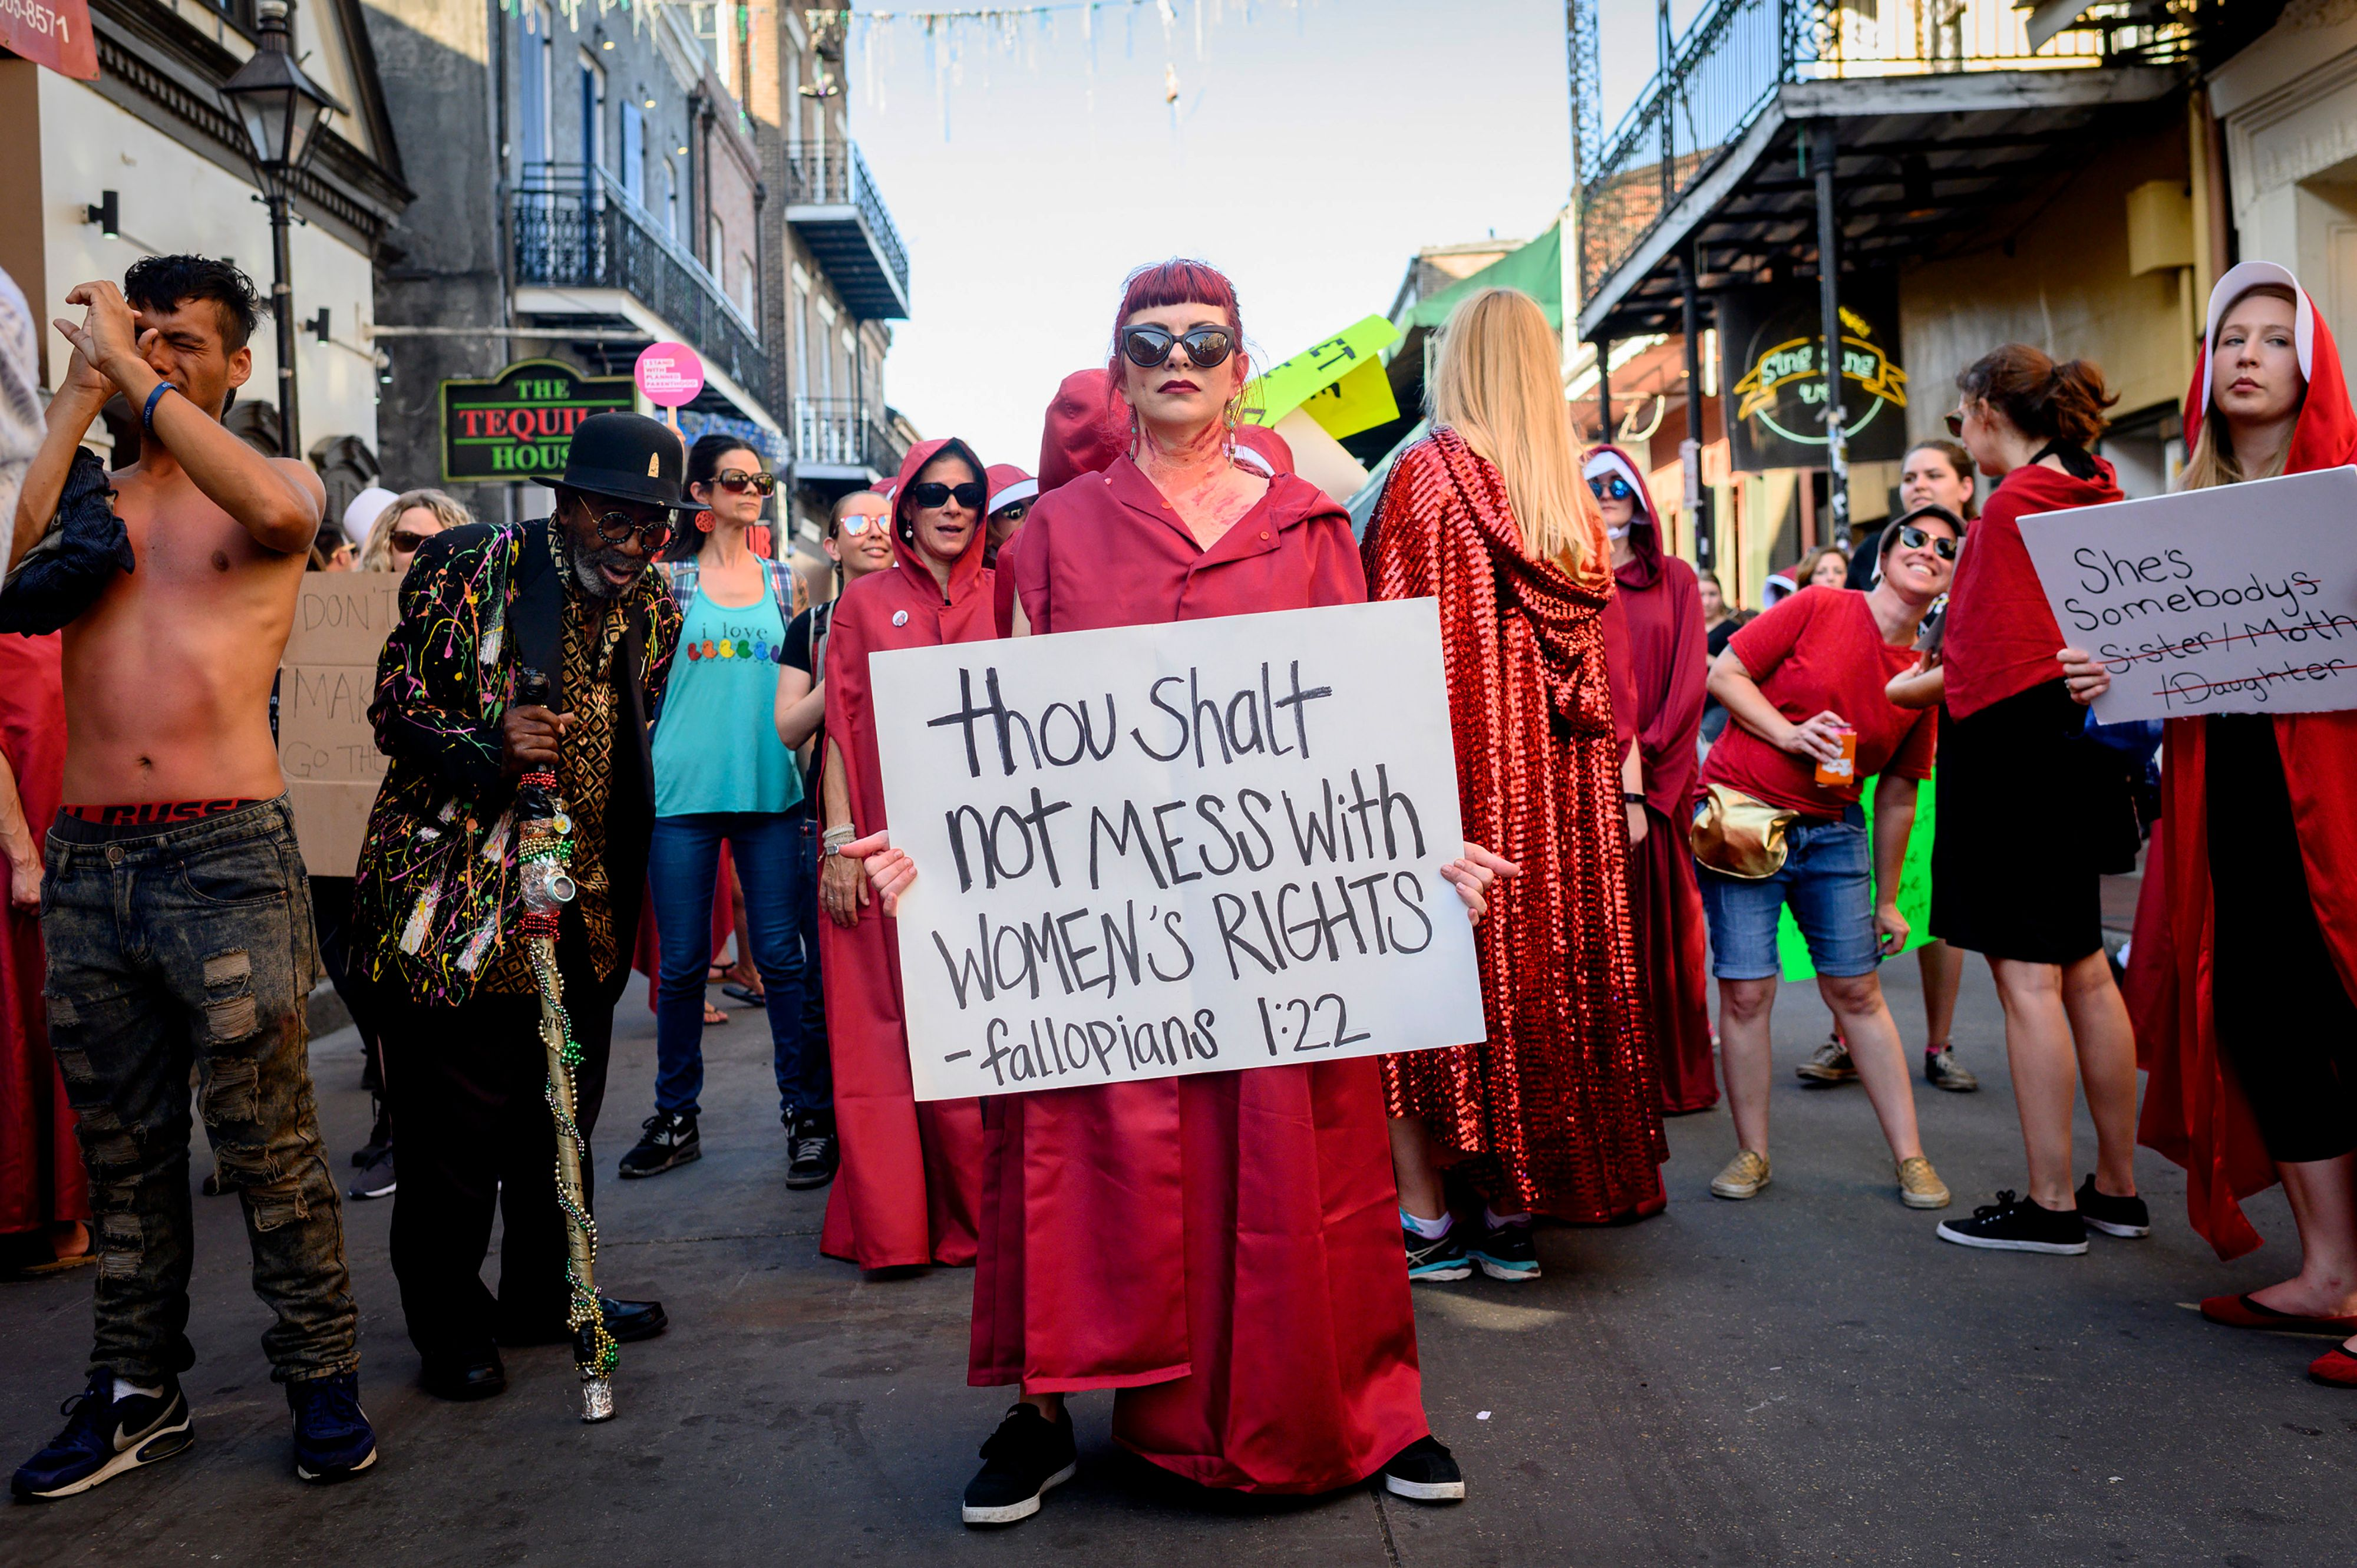 Pro-abortion protesters march down Bourbon Street in the French Quarter of New Orleans, Louisiana on May 25, 2019. (Emily Kask/AFP/Getty Images)